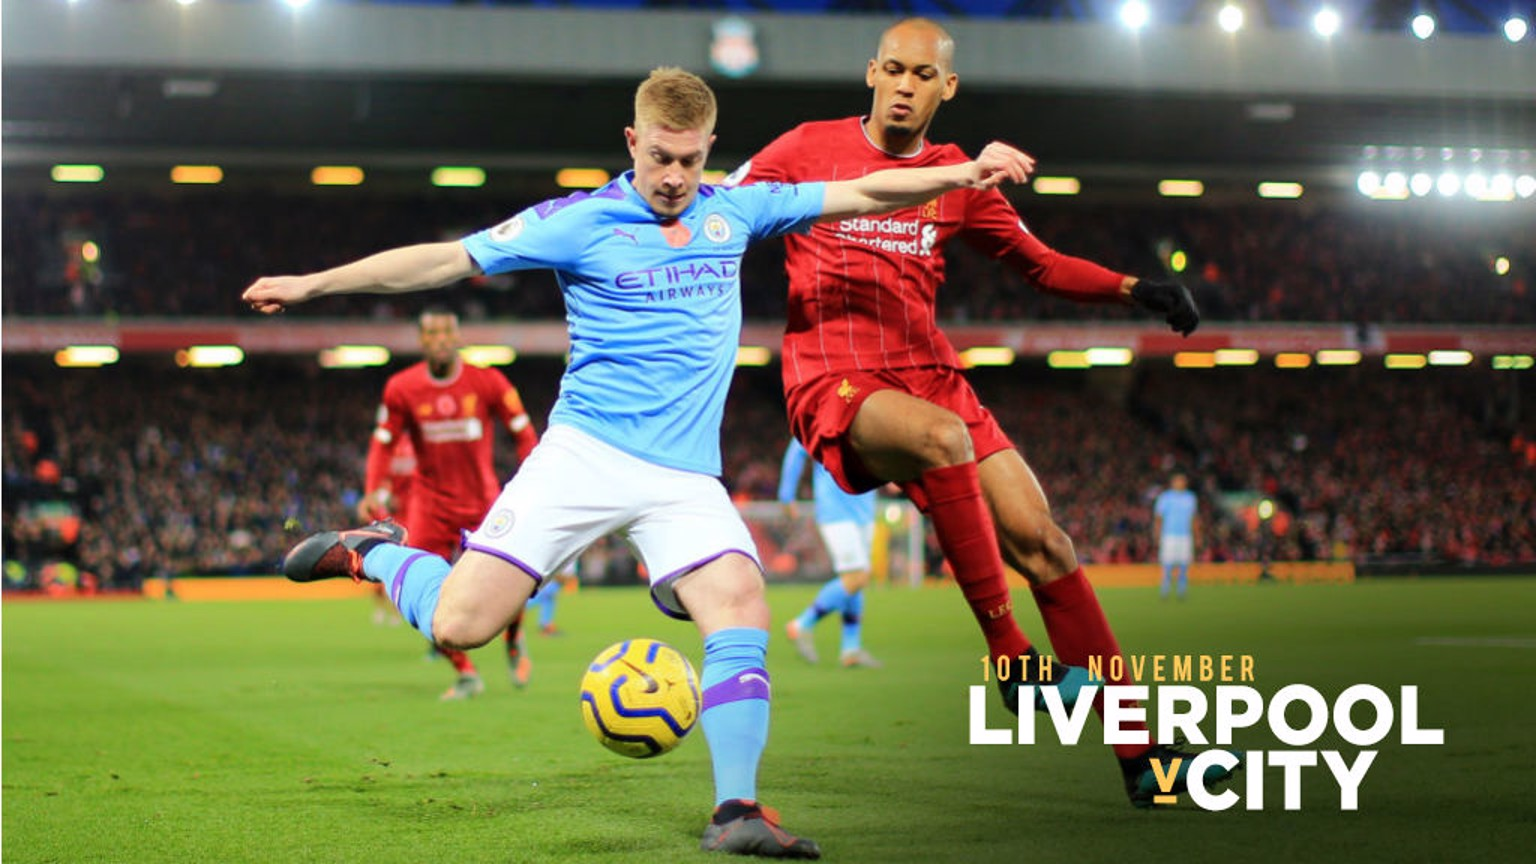 City suffer Anfield disappointment